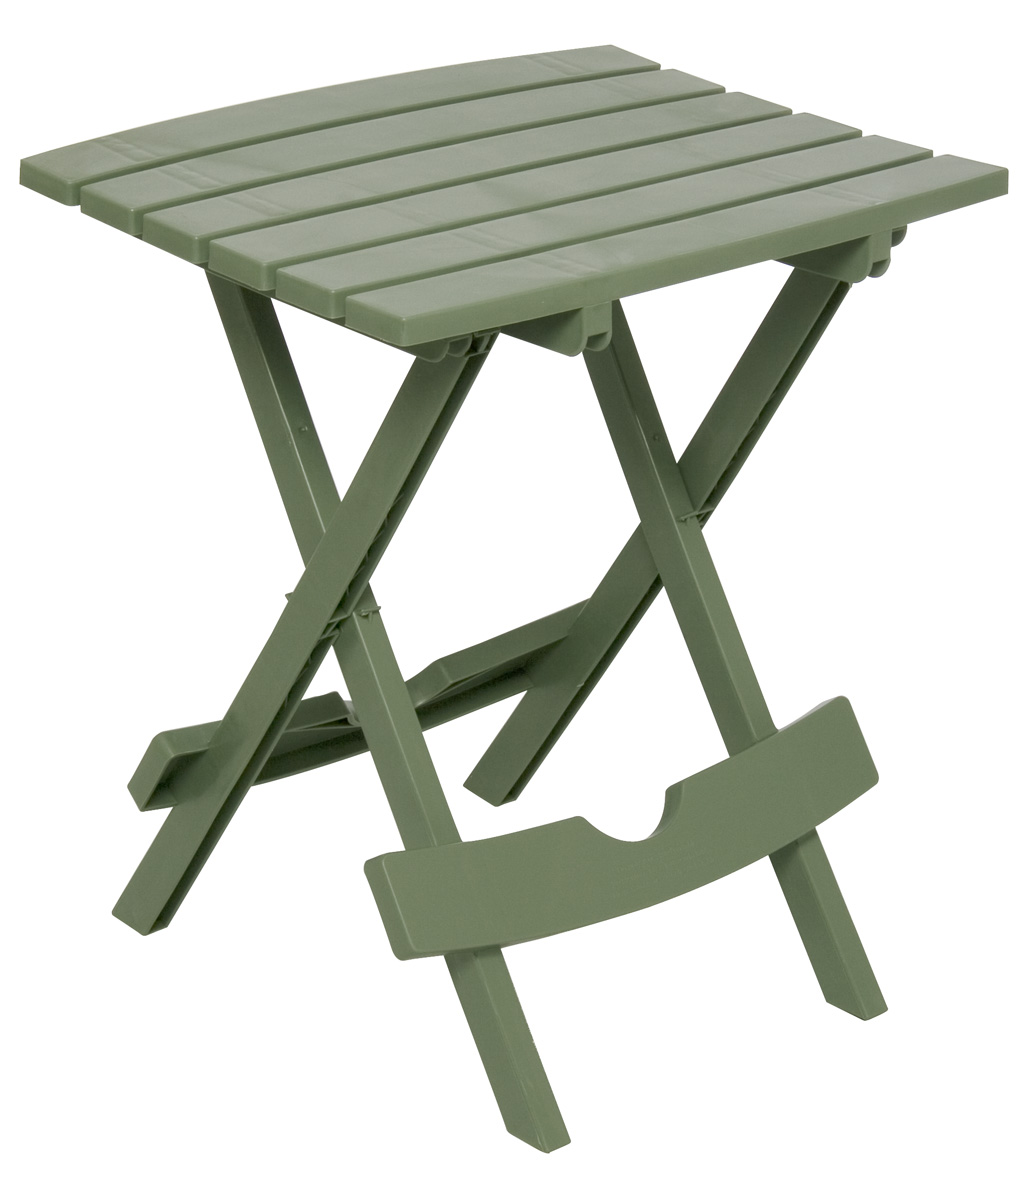 Adams Manufacturing Quik Fold Side Table, Sage